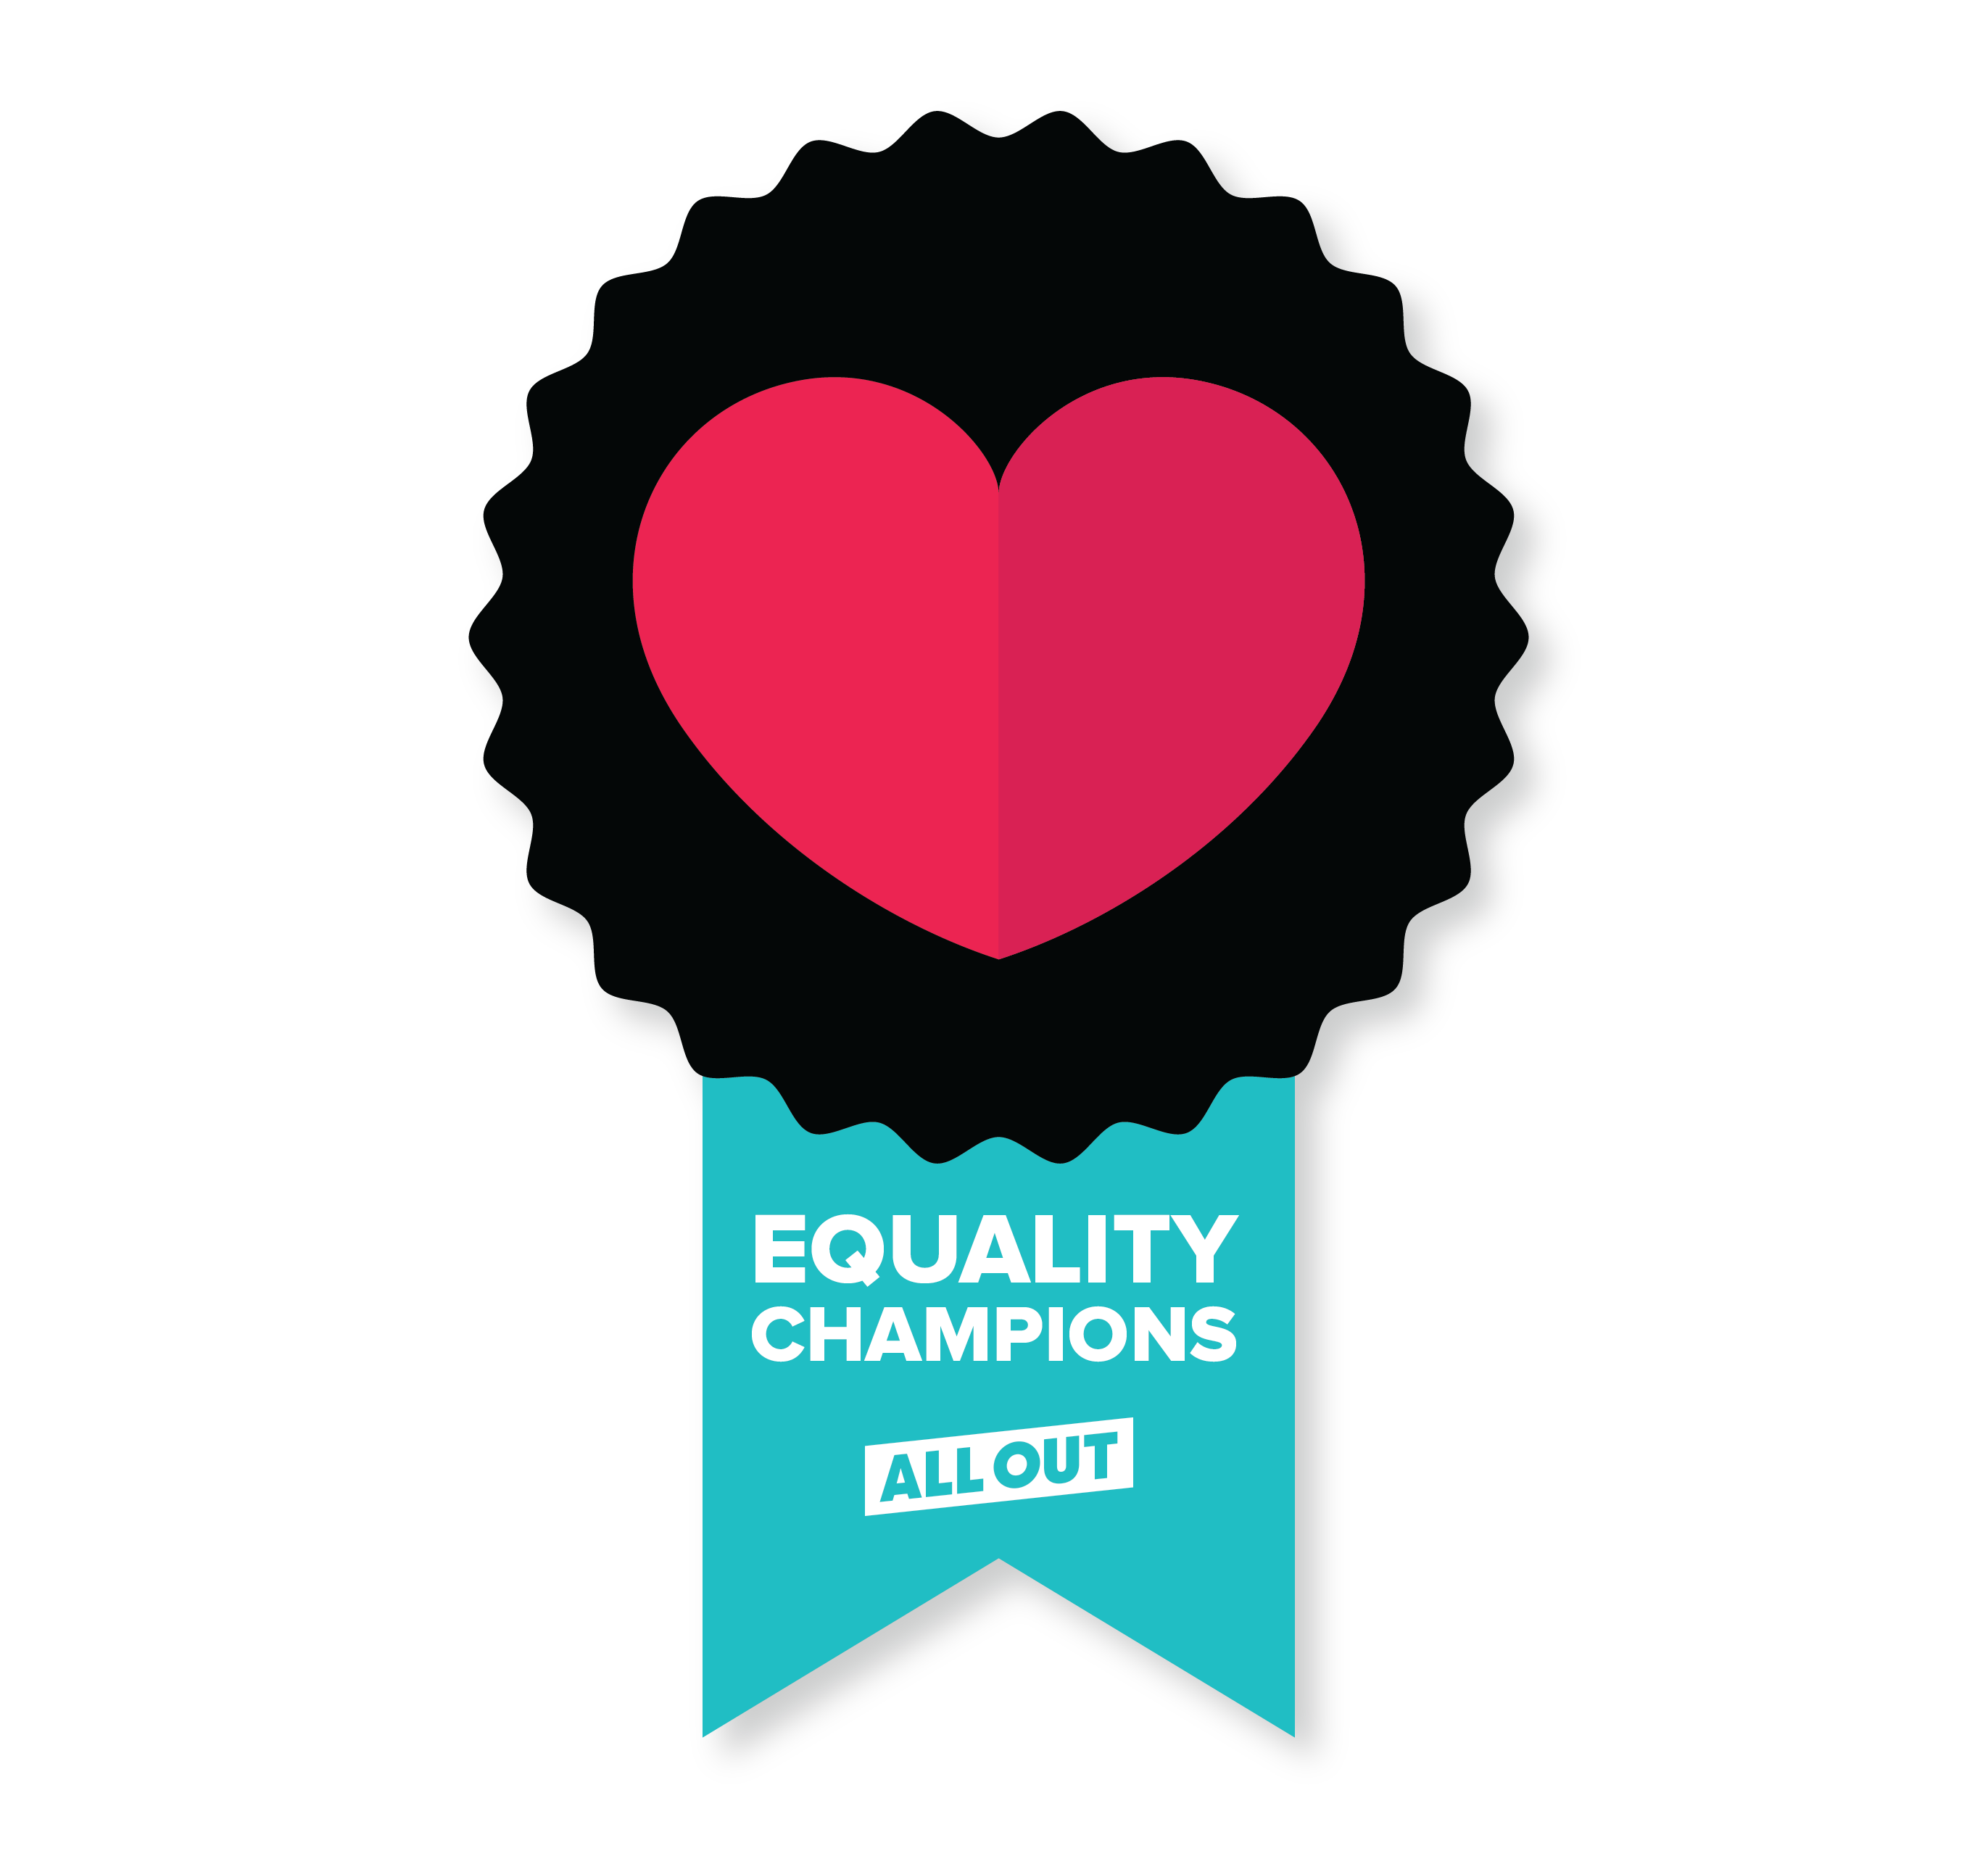 cu2943 champion equality Check out our top free essays on equality and diversity multiple identities to help you write your own essay cu2943 - champion equality.